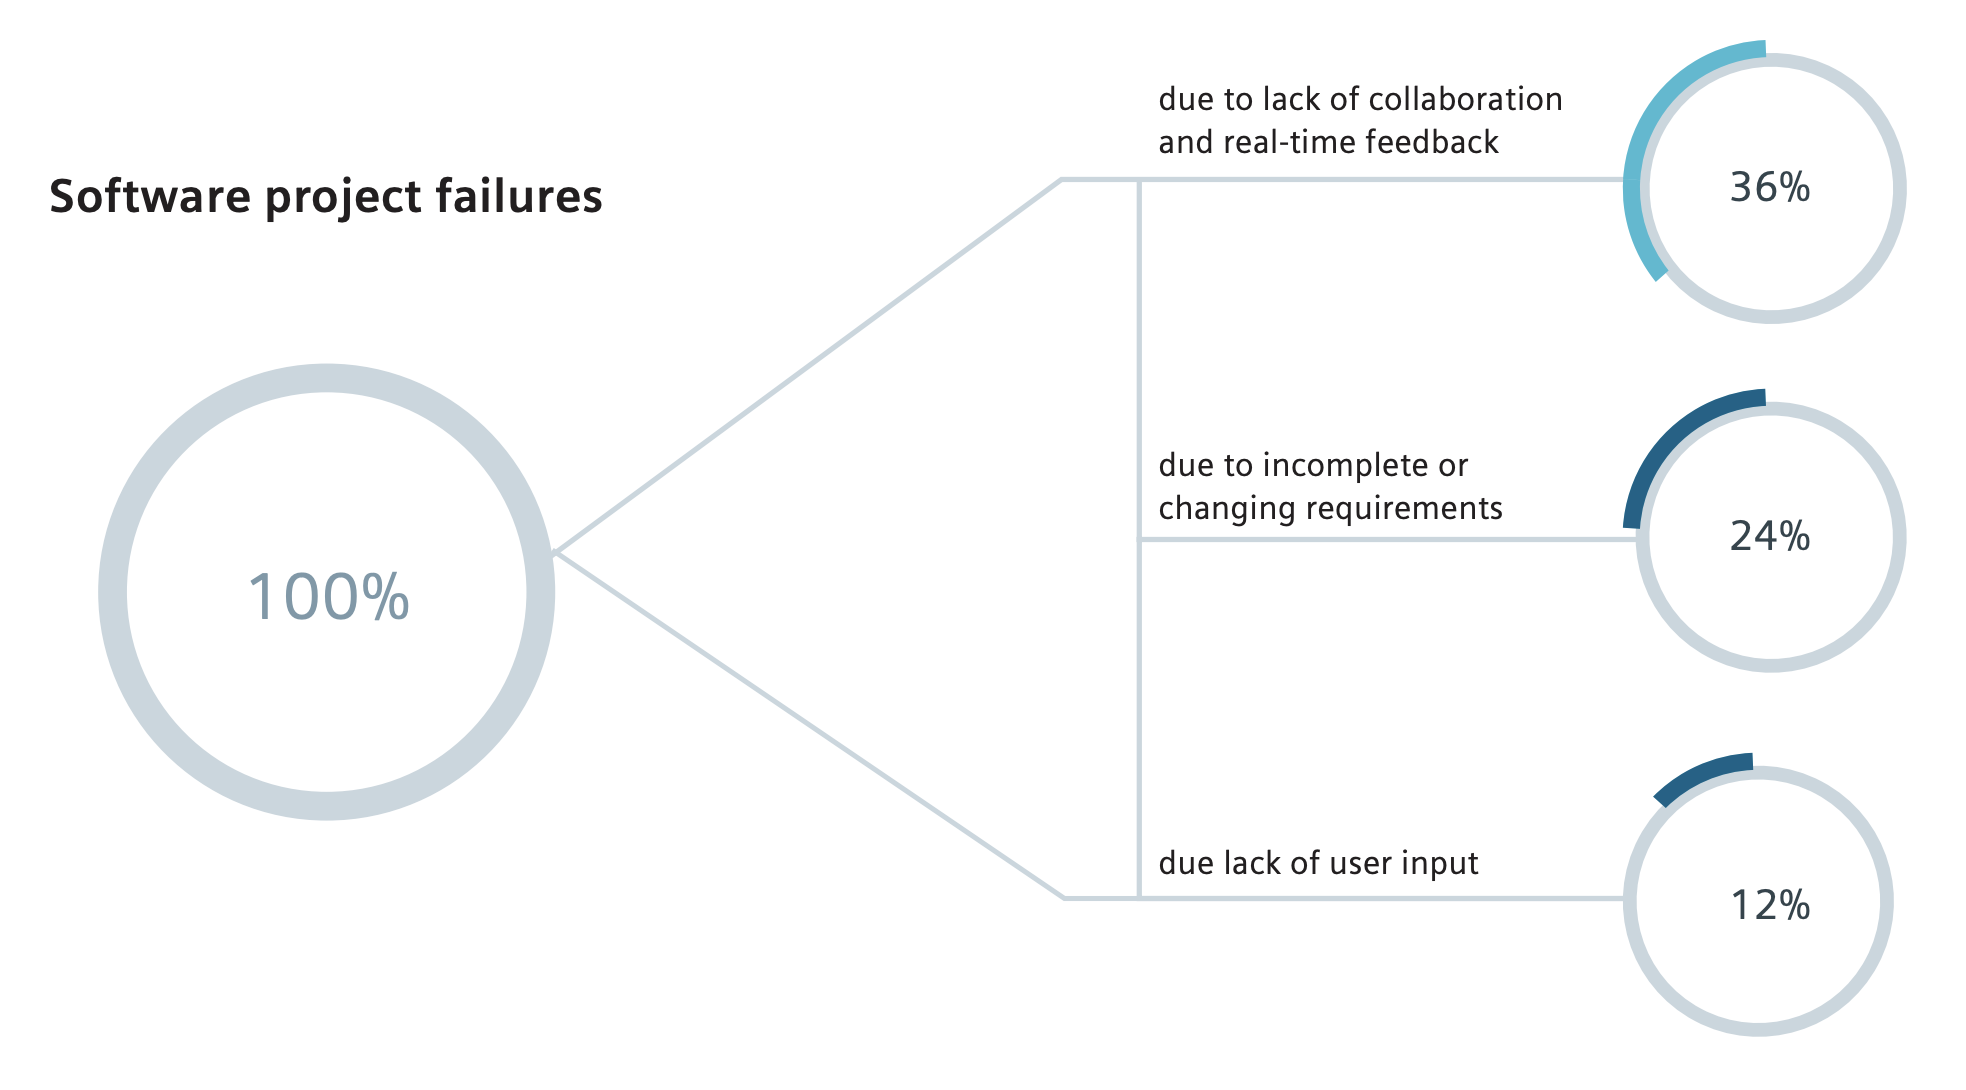 Software project failures